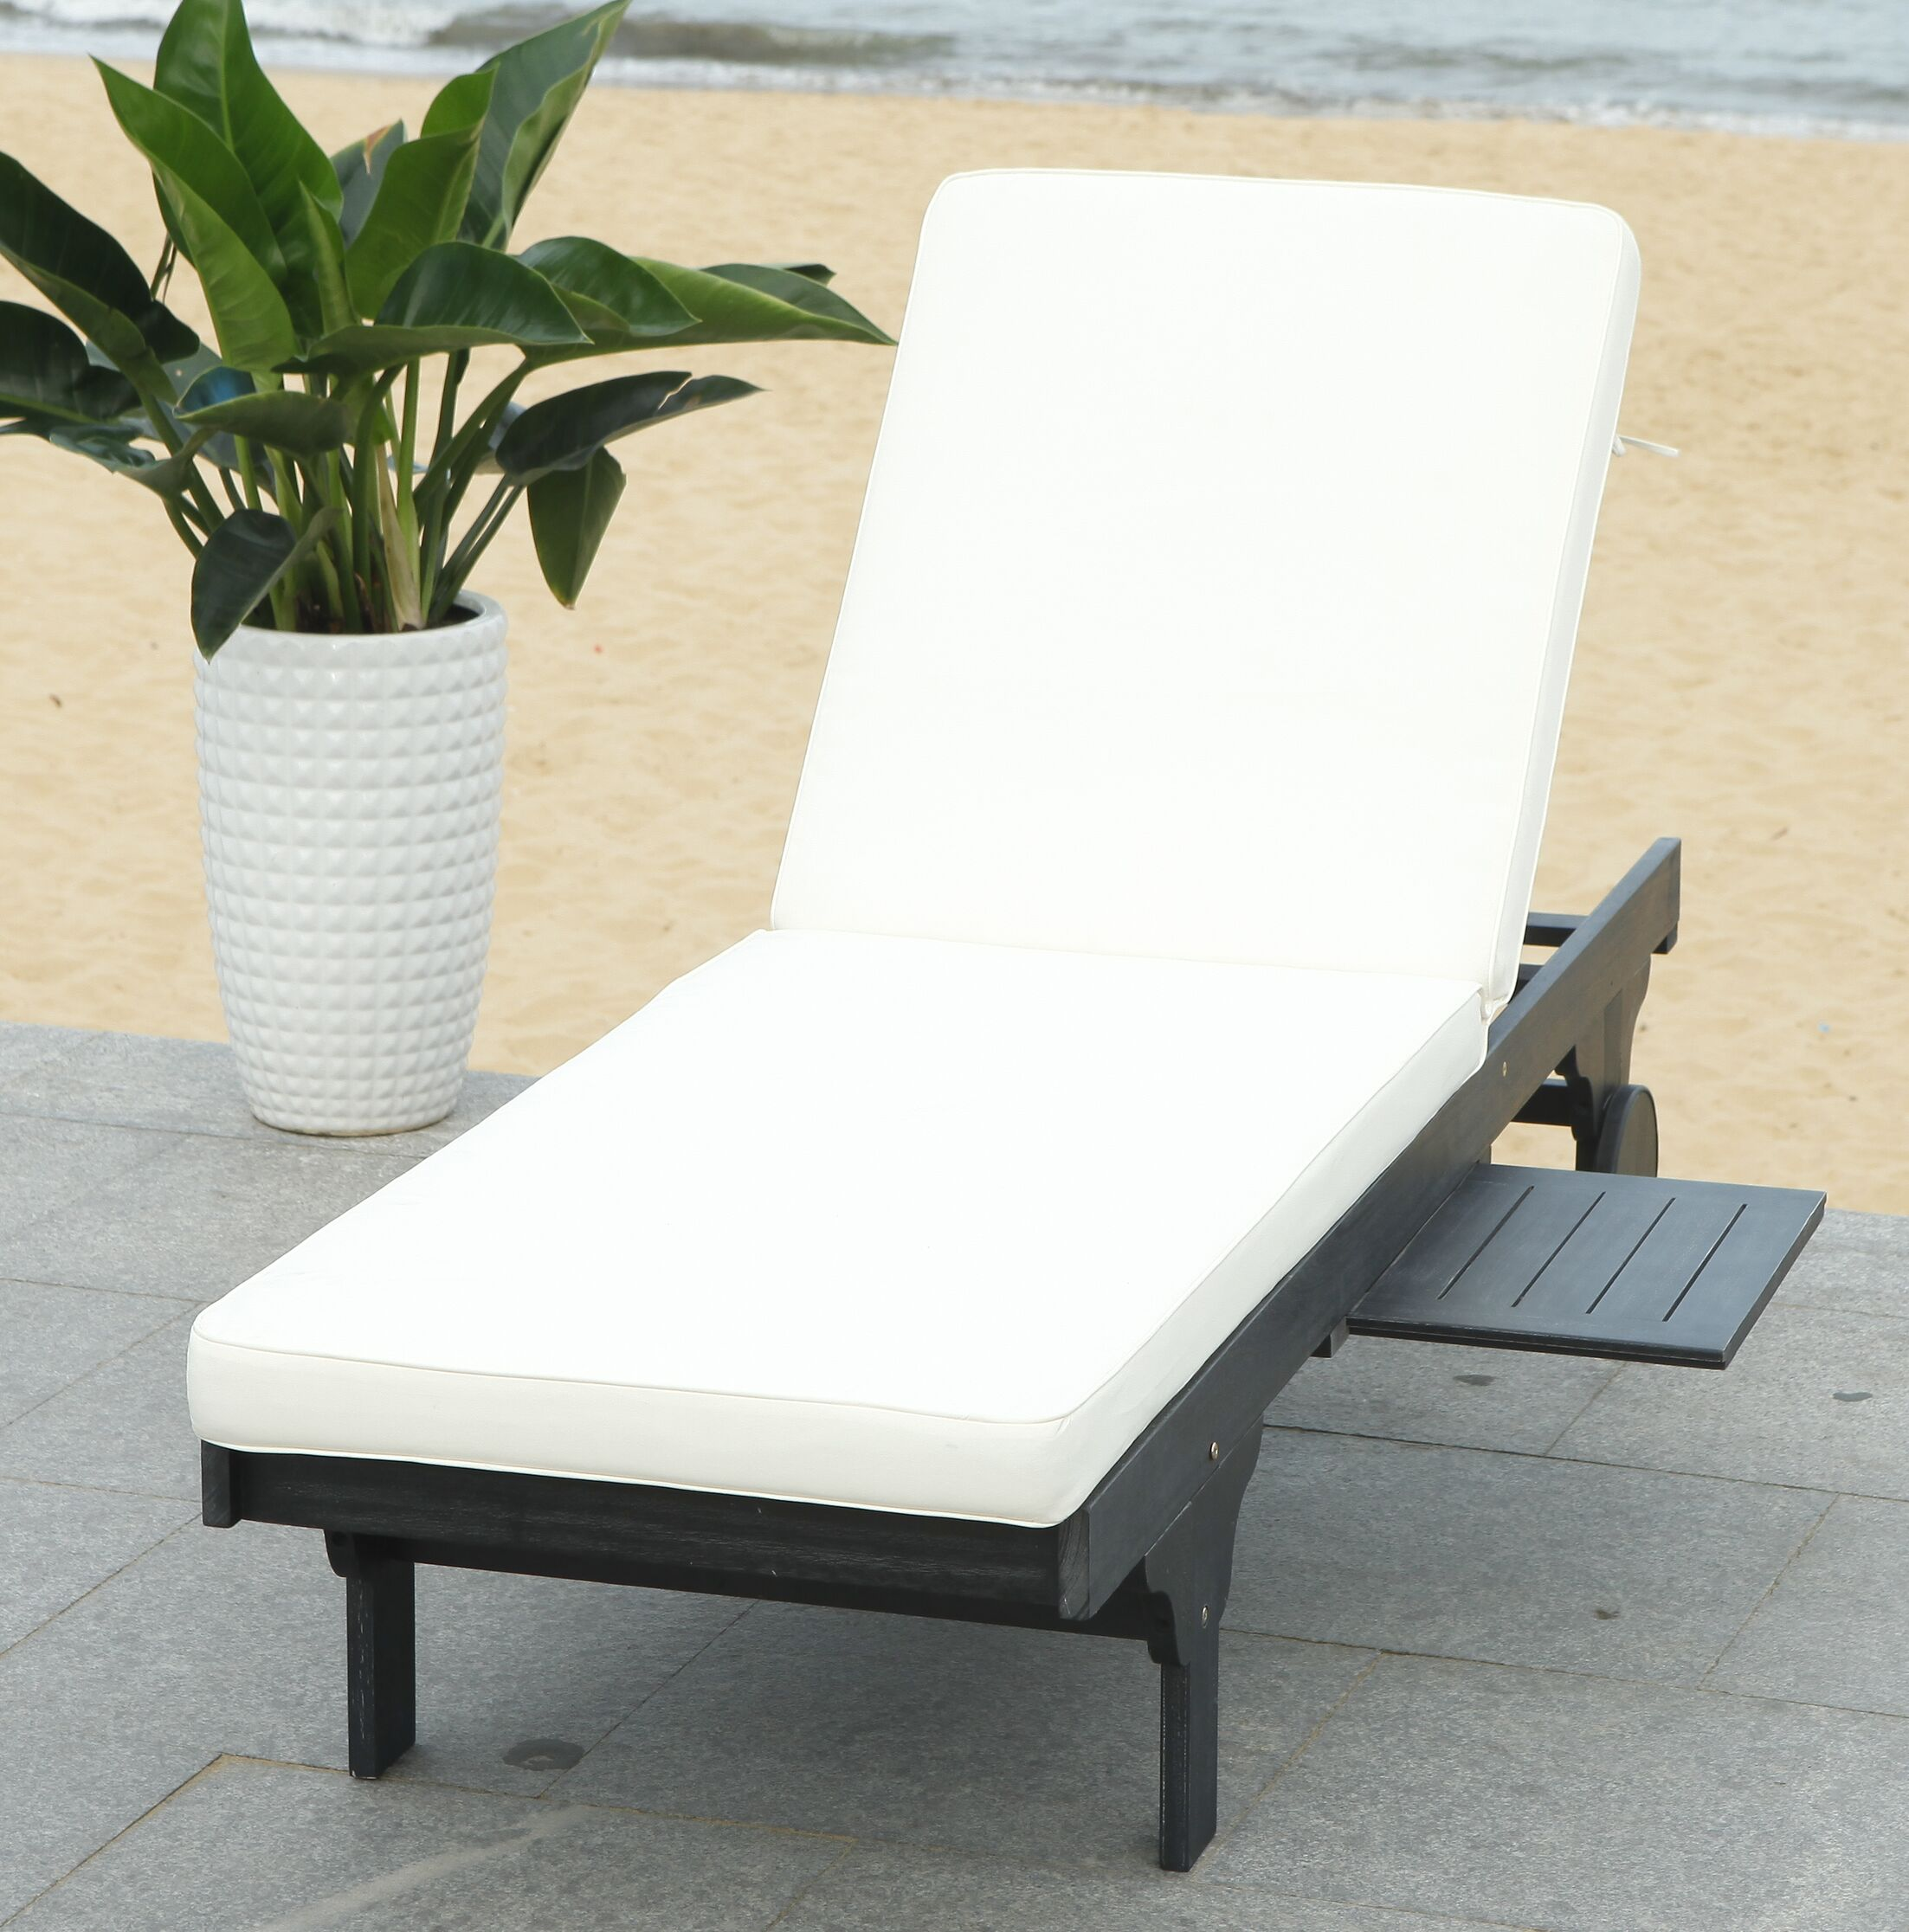 Fullerton Reclining Chaise Lounge with Cushion and Table Finish: Black